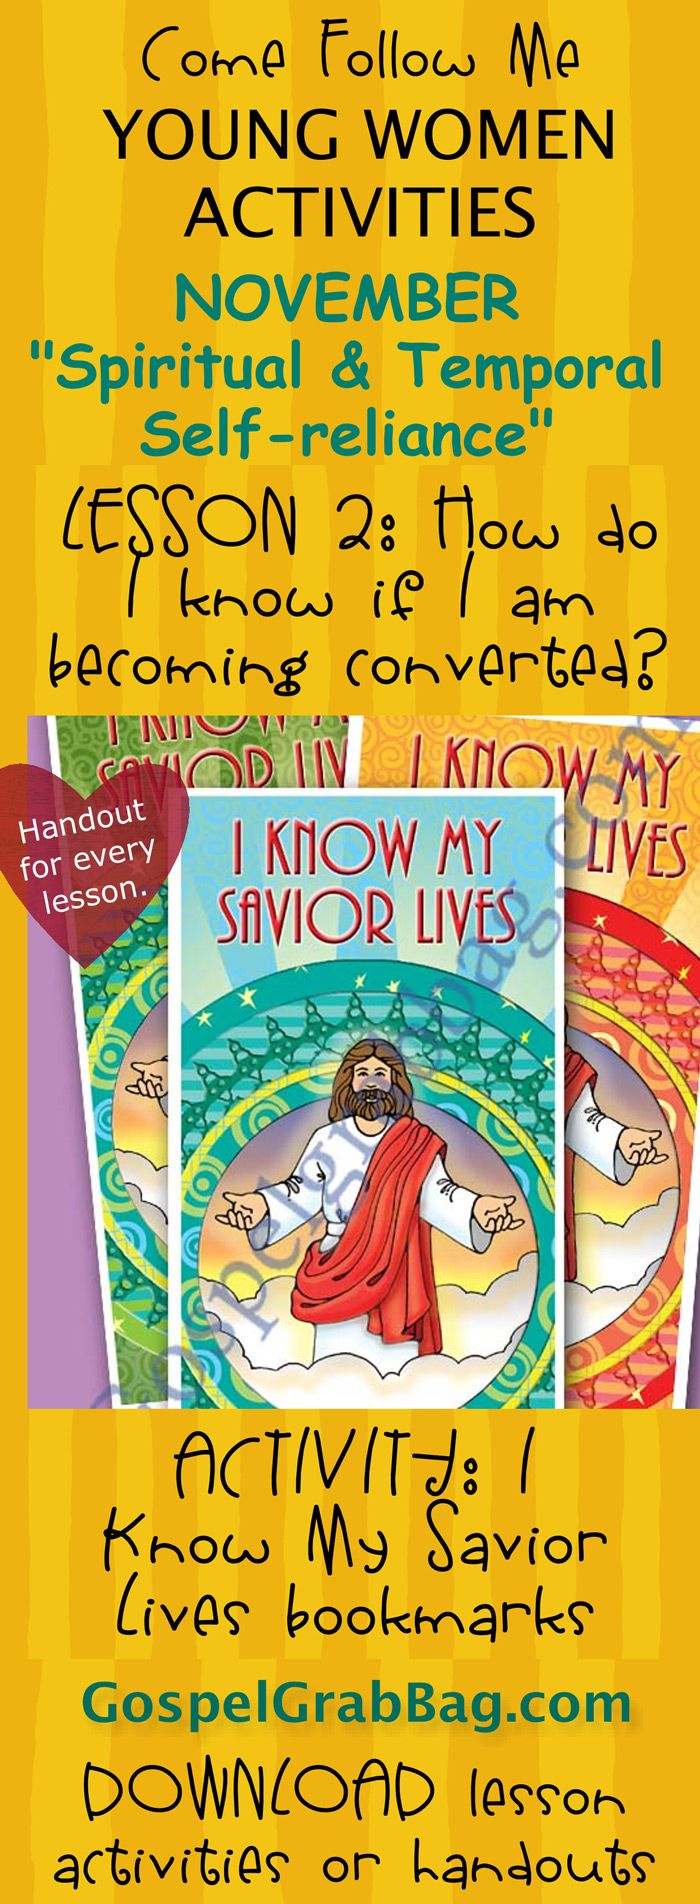 """I KNOW MY SAVIOR LIVES BOOKMARKS  – Activity for November Young Women – Theme:  """"Spiritual and Temporal Self-Reliance"""" – Lesson #2 Theme: How do I know if I am becoming converted?, LDS - Christian lesson activities to download from gospelgrabbag.com"""